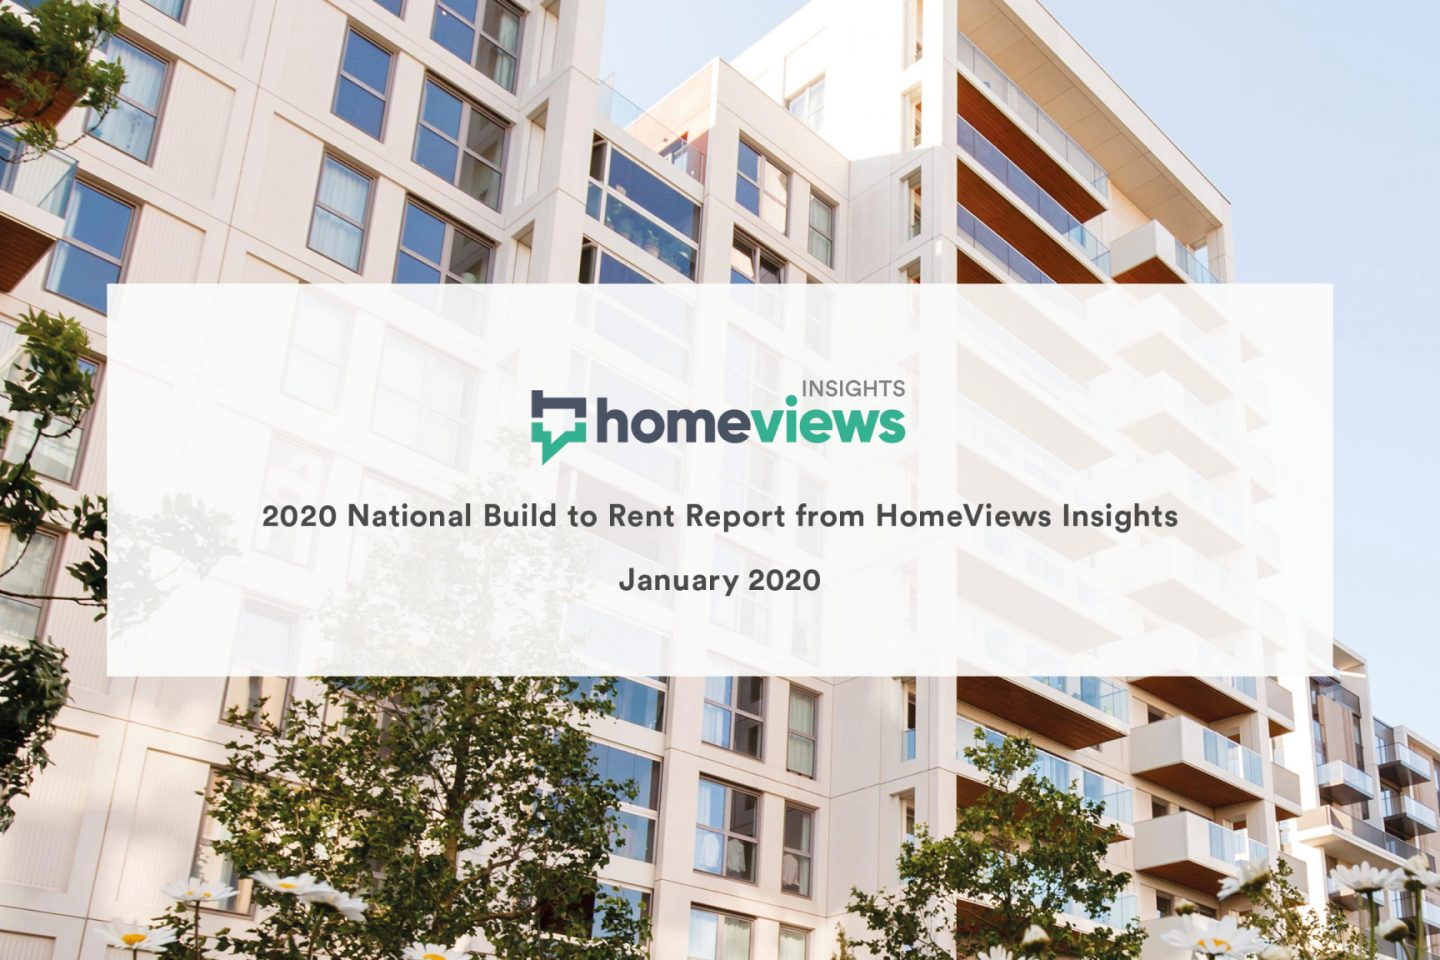 2020 National Build to Rent Report from HomeViews Insights